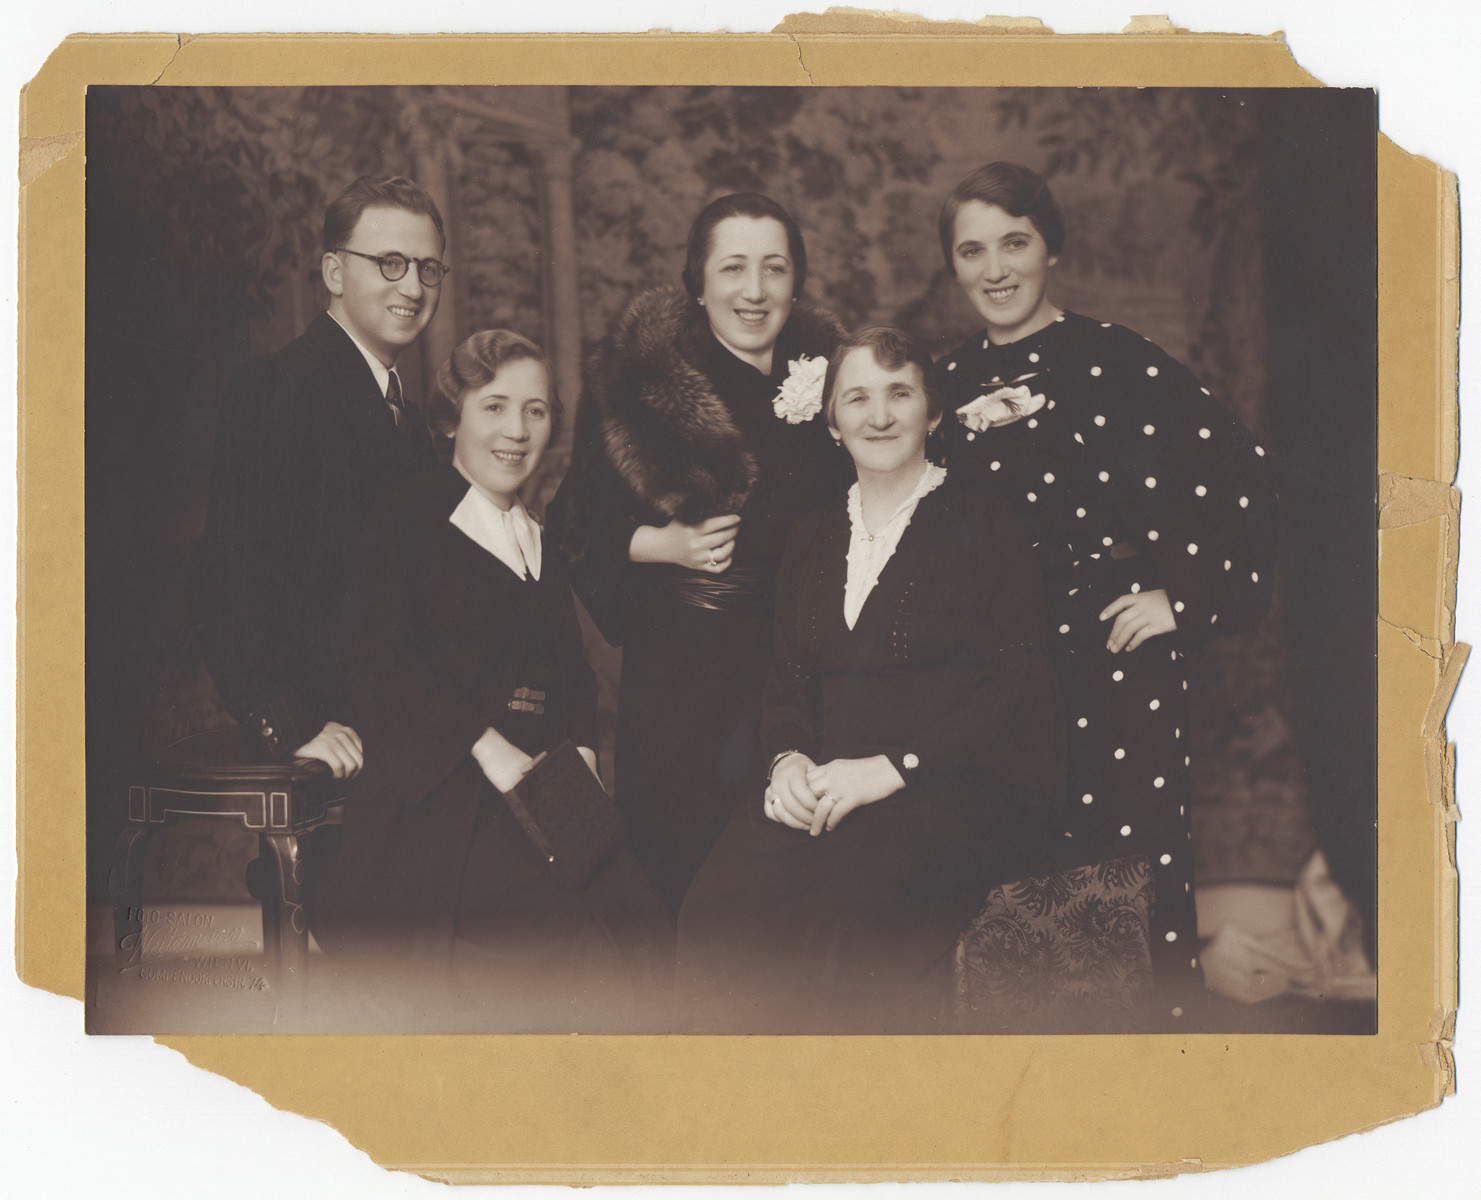 Portrait of an Austrian Jewish family.  Pictured is Frima Hochstaet (second from the right) and four of her children (left to right): Max, Regina orGreta, Sarafina, and Regina or Greta.